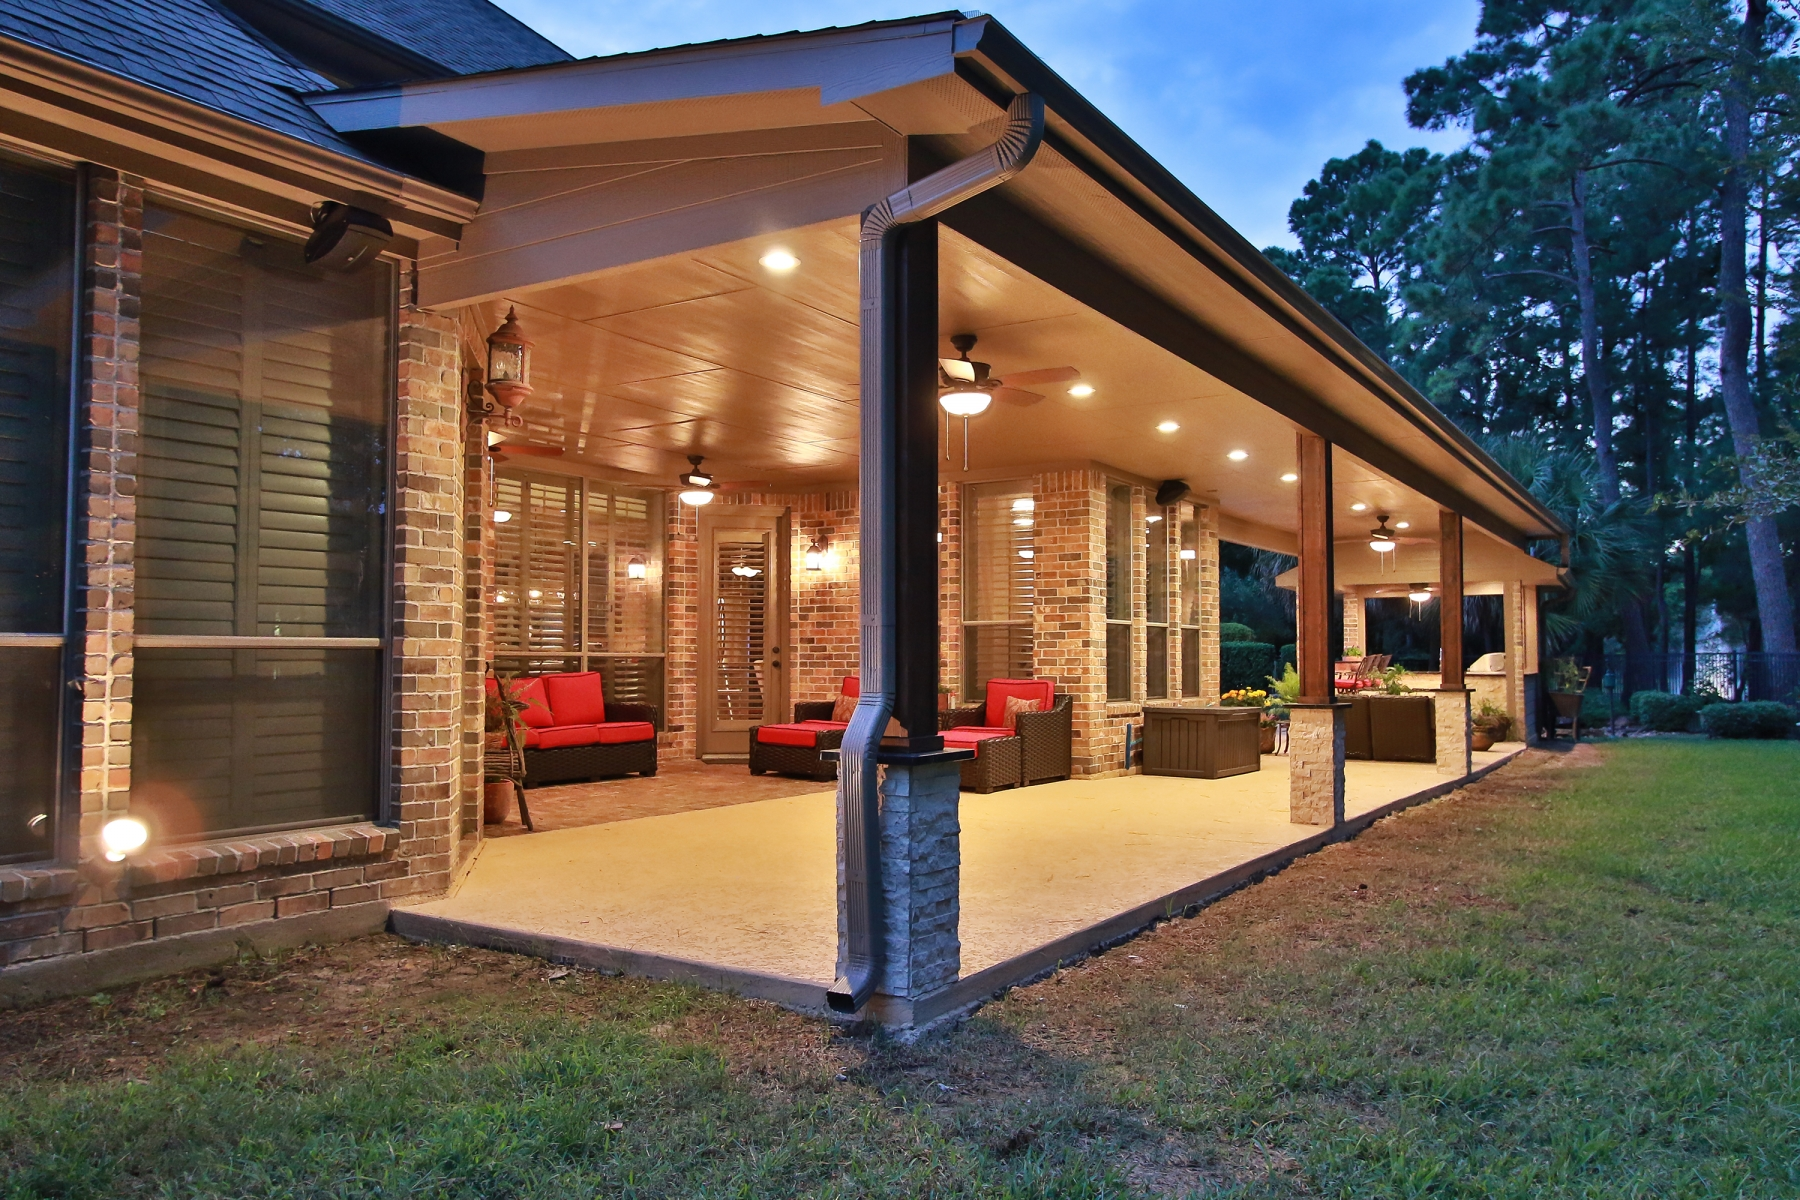 Large Covered Patio with Zoned Outdoor Living Areas